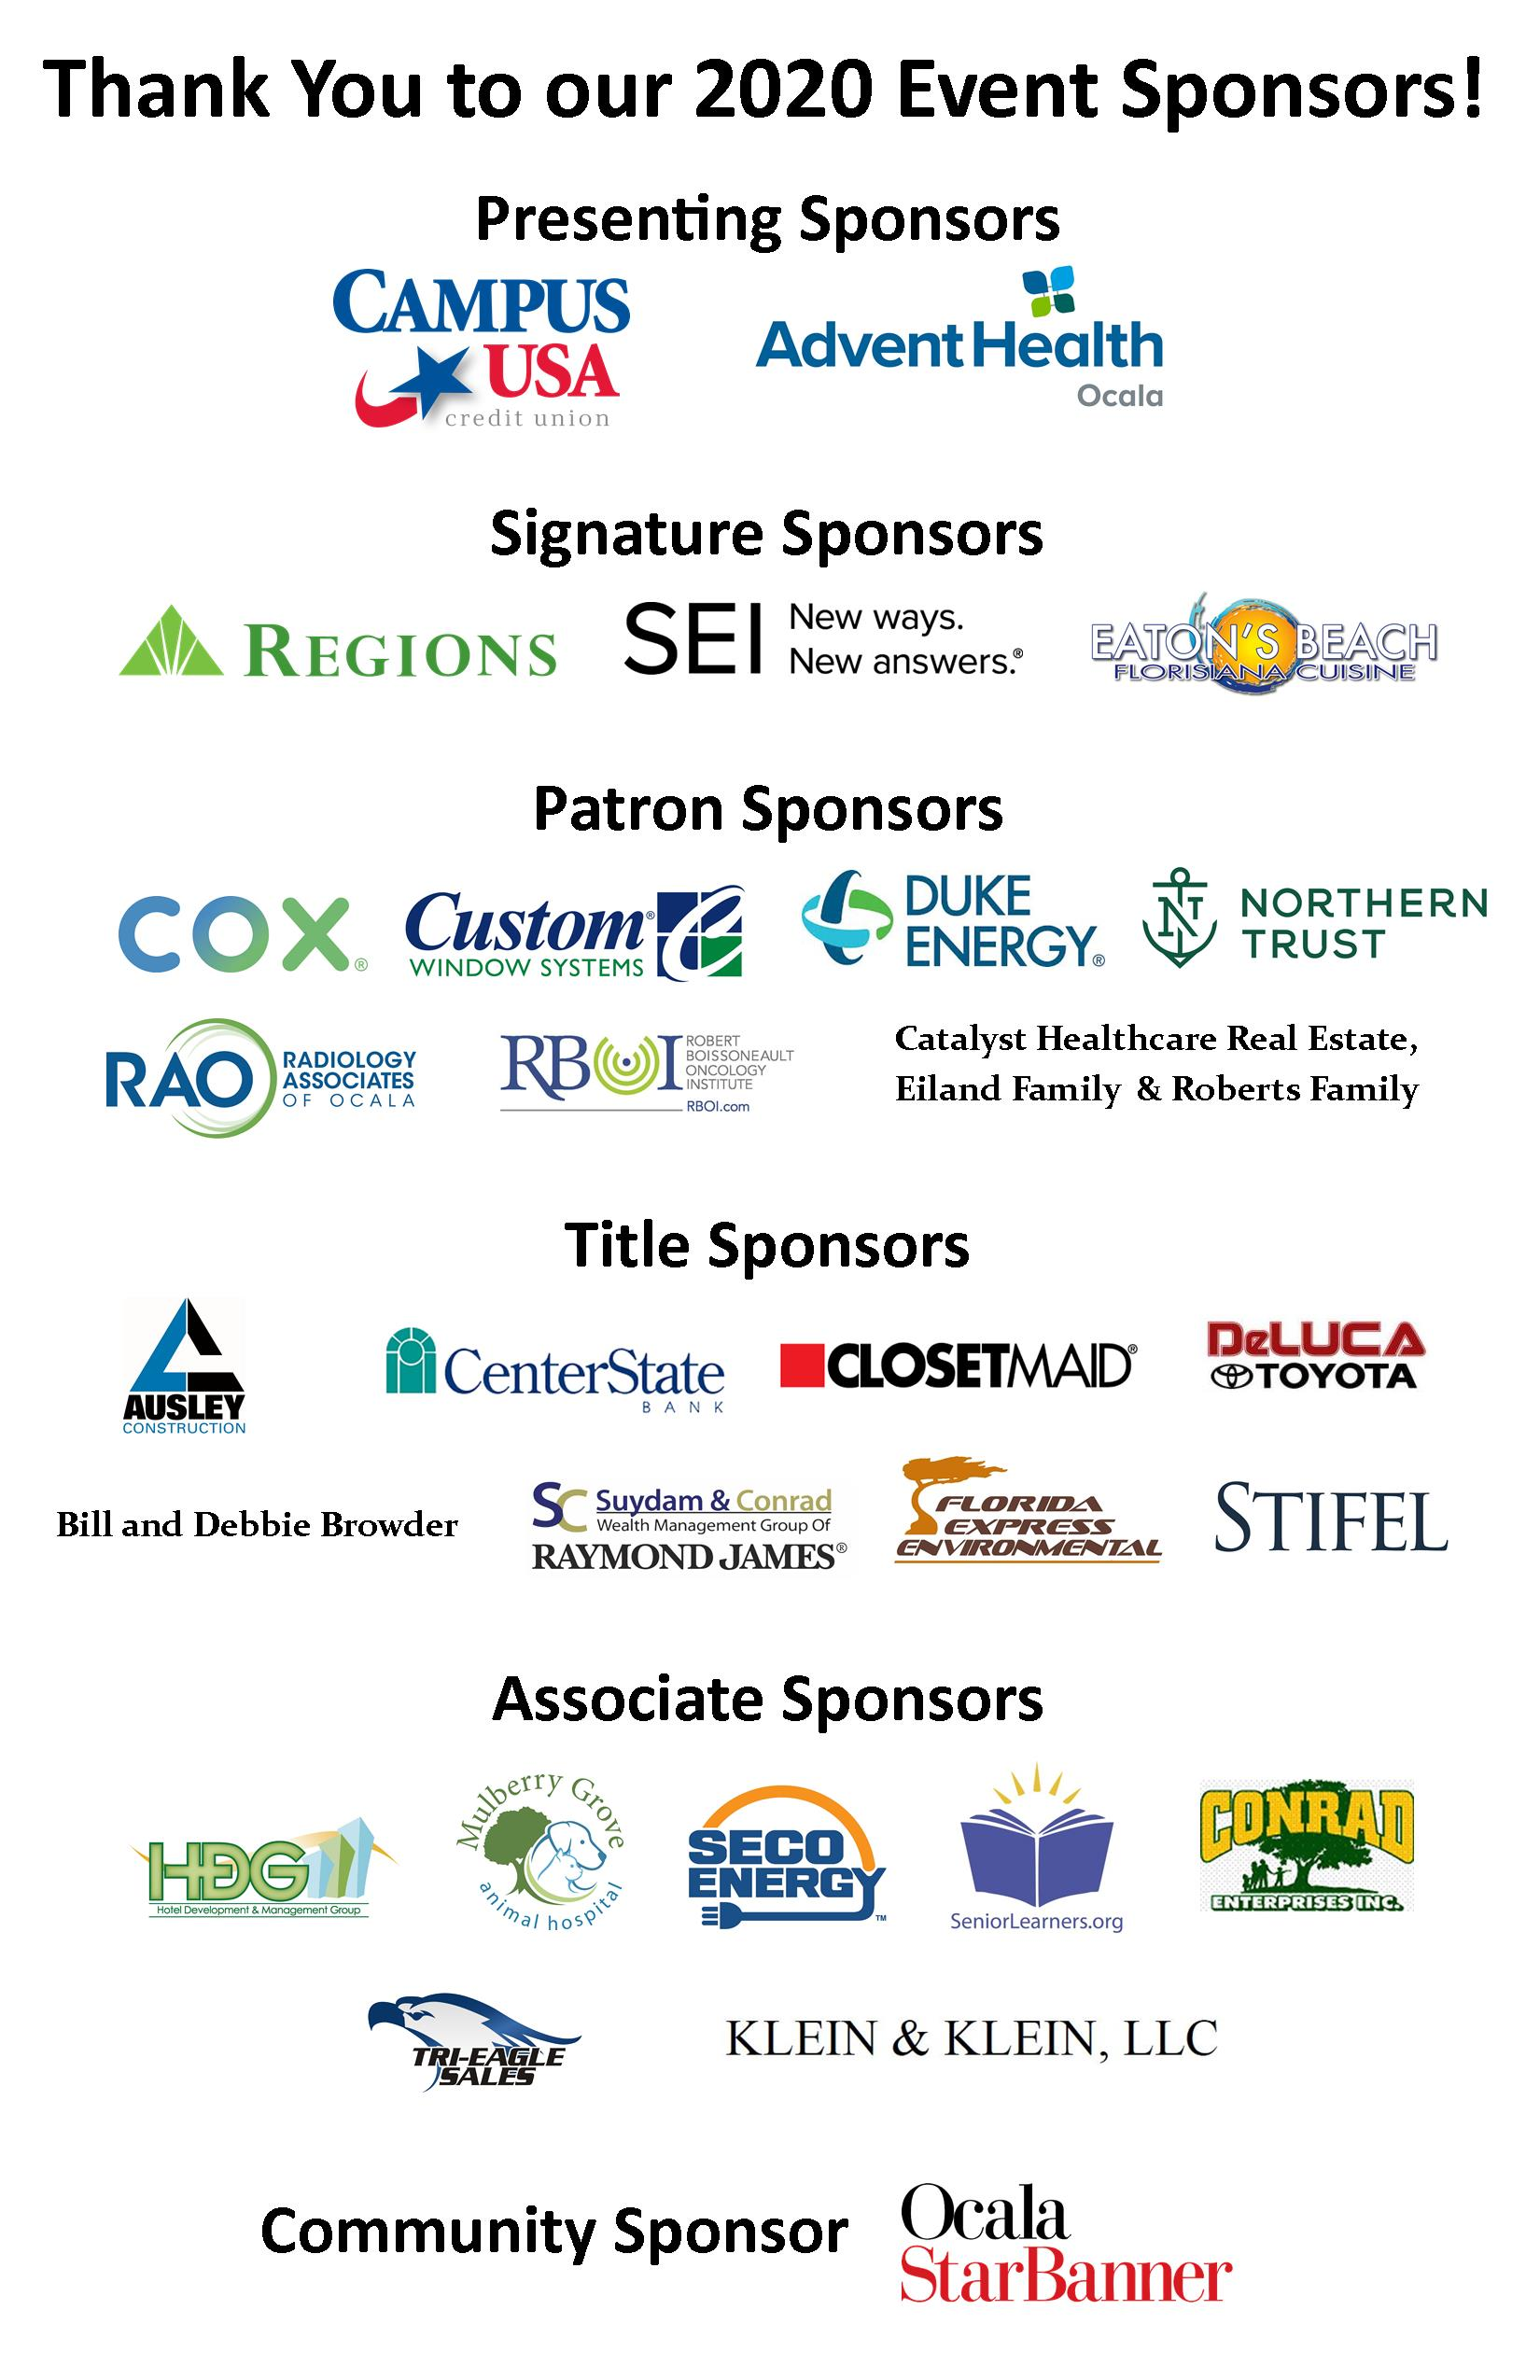 Thank you to our Night at the Farm sponsors!